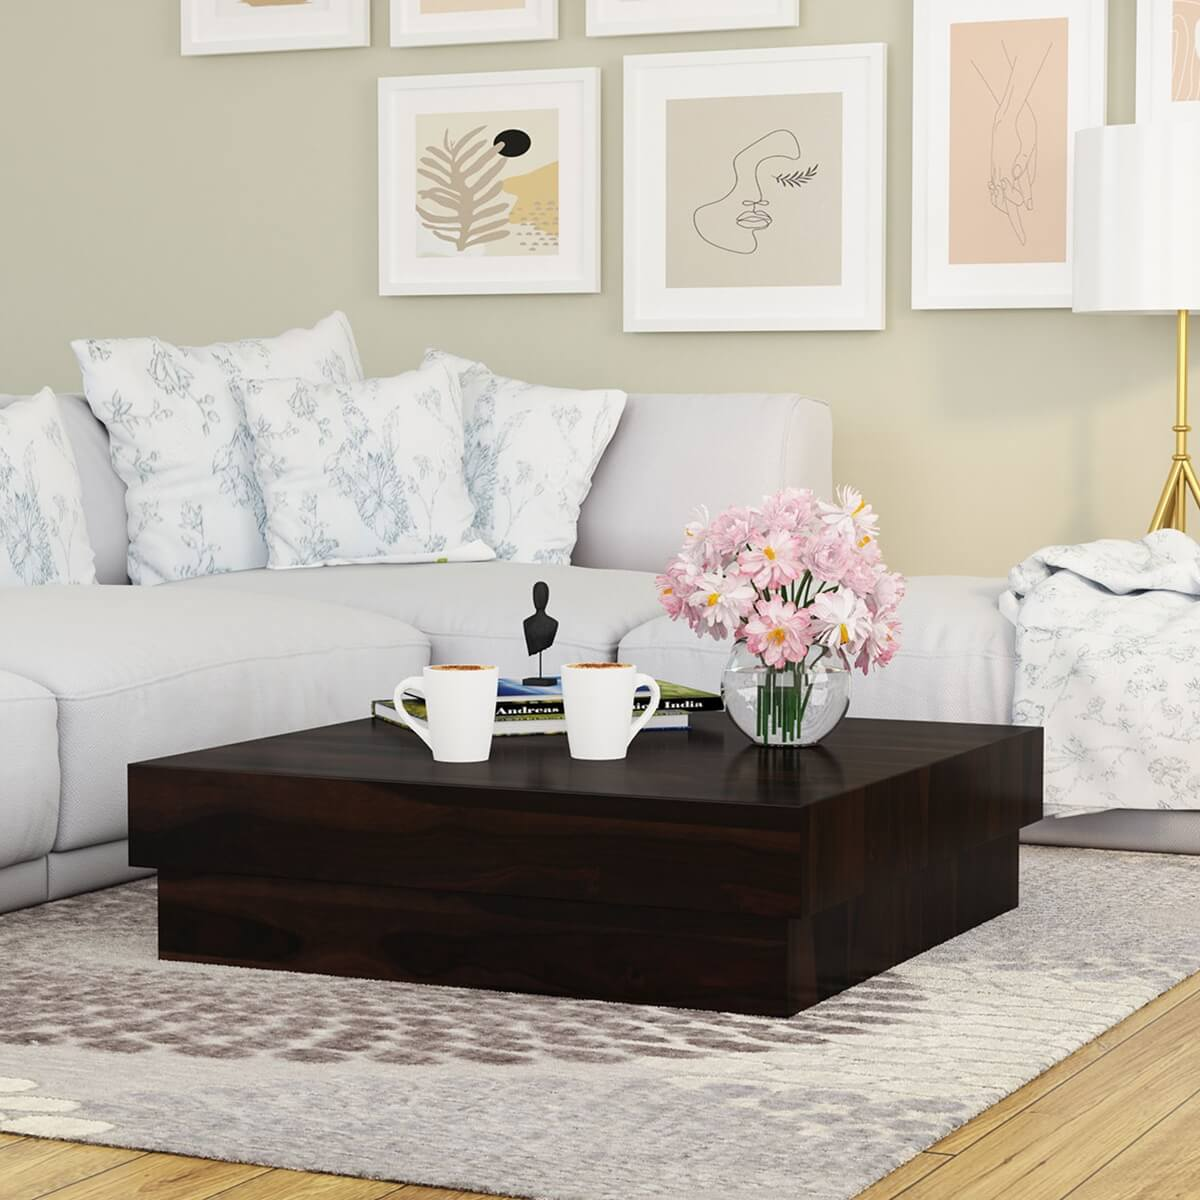 Solid wood square contemporary platform unique coffee table for Unusual coffee tables